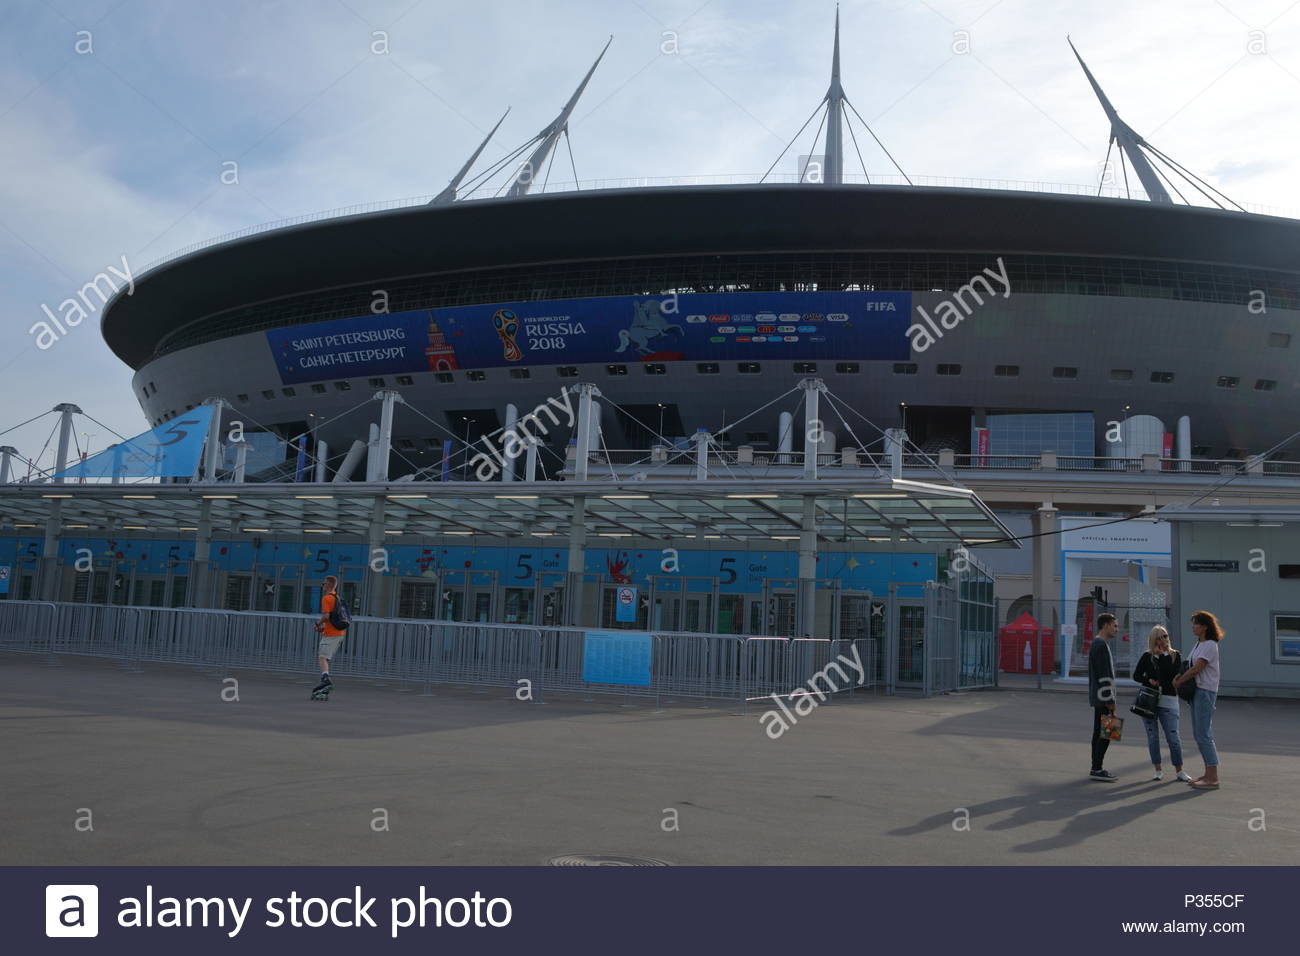 St. Petersburg, Russia - June 16, 2018: People against Saint Petersburg stadium during FIFA World Cup Russia 2018. Saint-Petersburg host 7 matches of  - Stock Image